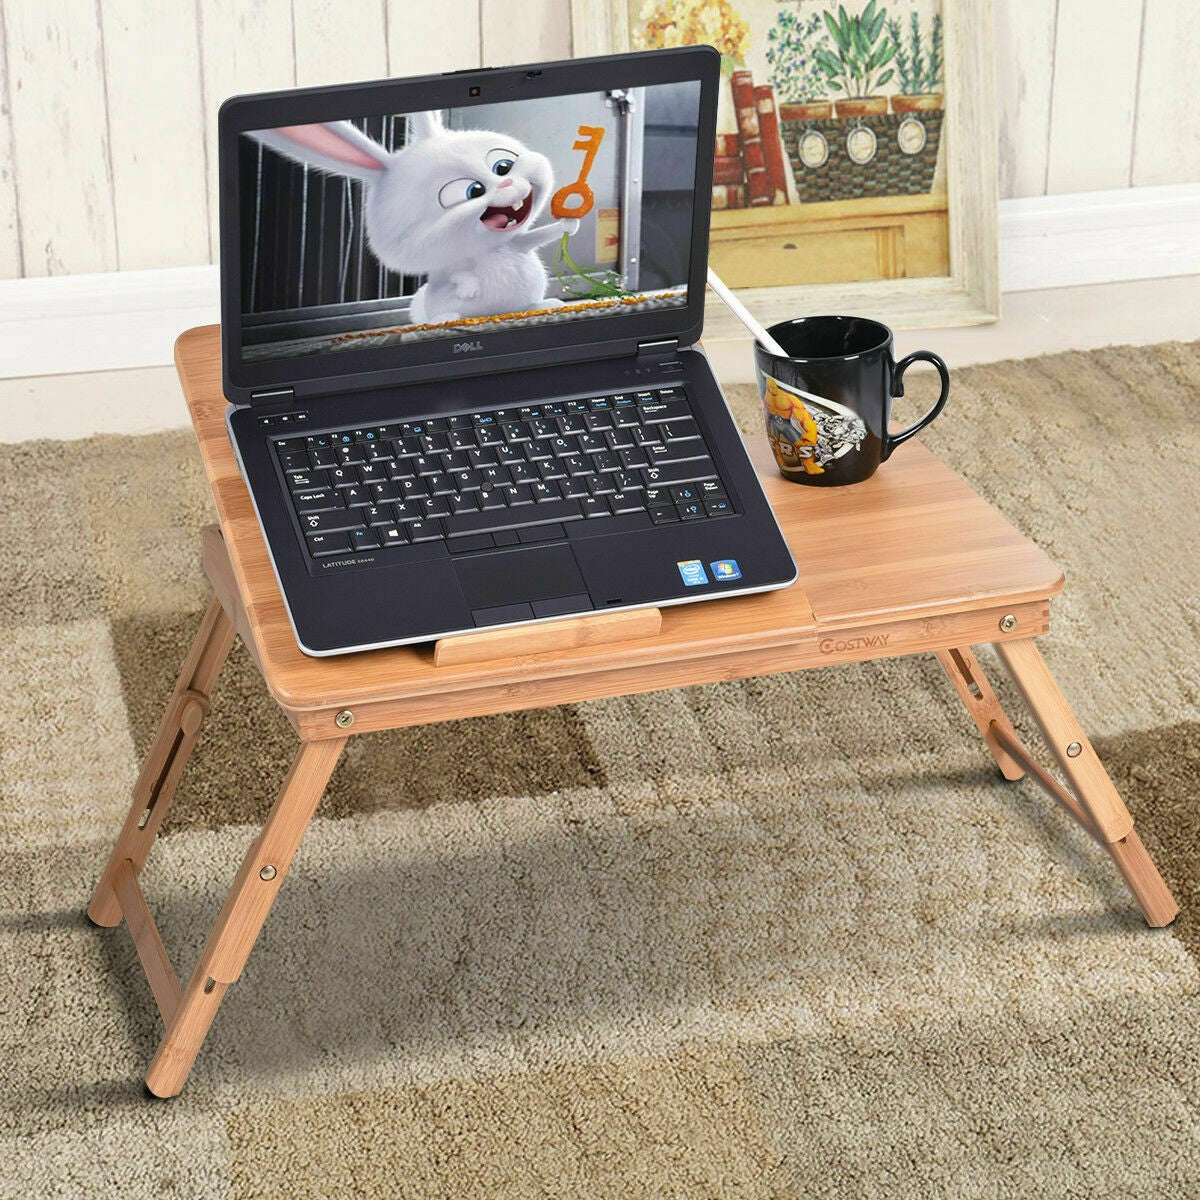 Bamboo Bed Table Desk Portable Over the Bed Couch Laptop Table - Morealis